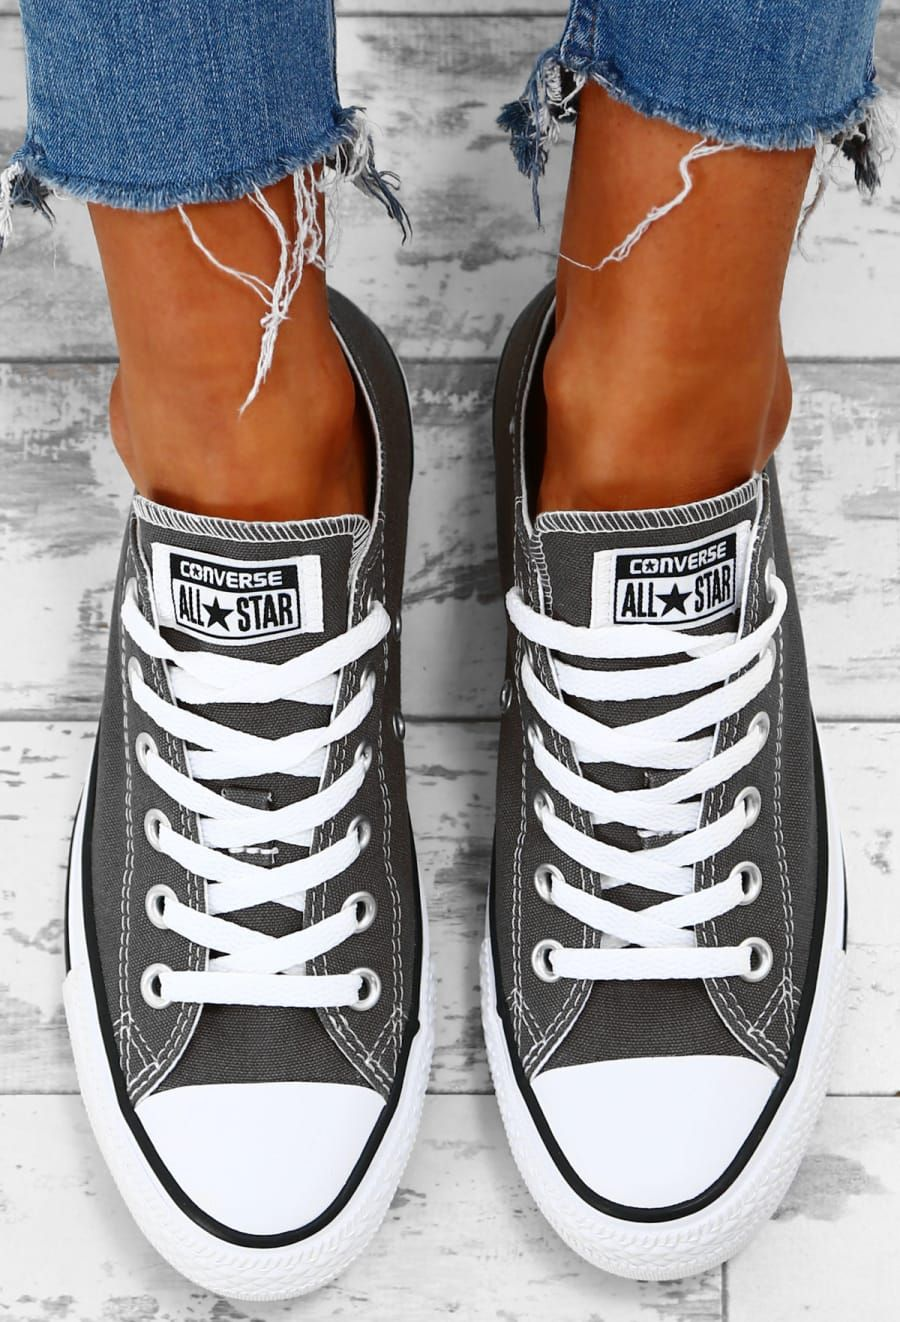 01968605ae0 Chuck Taylor Converse All Star Charcoal Trainers - UK 3